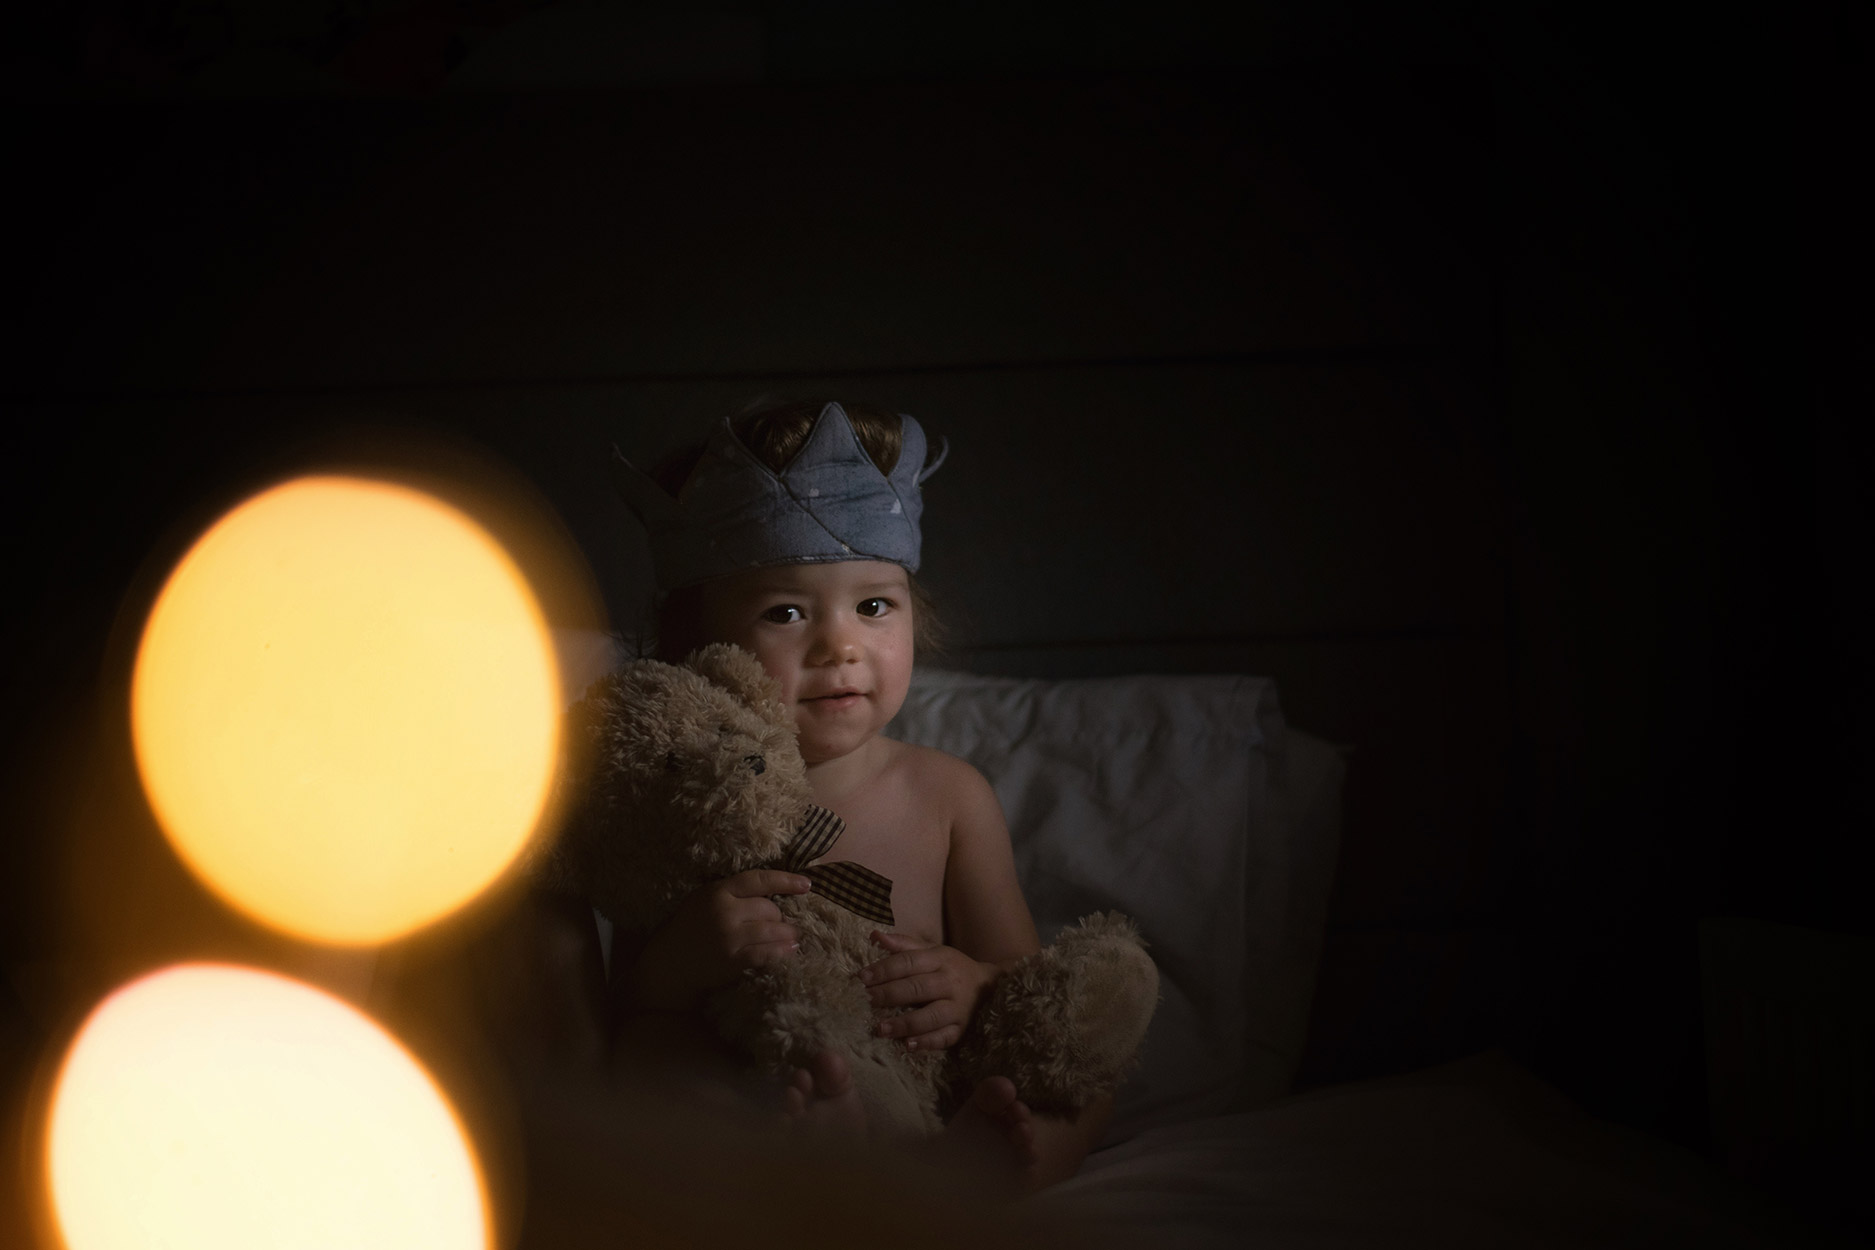 Toddler waking up in the morning of his second birthday wearing fabric crown in bed holding teddy bear